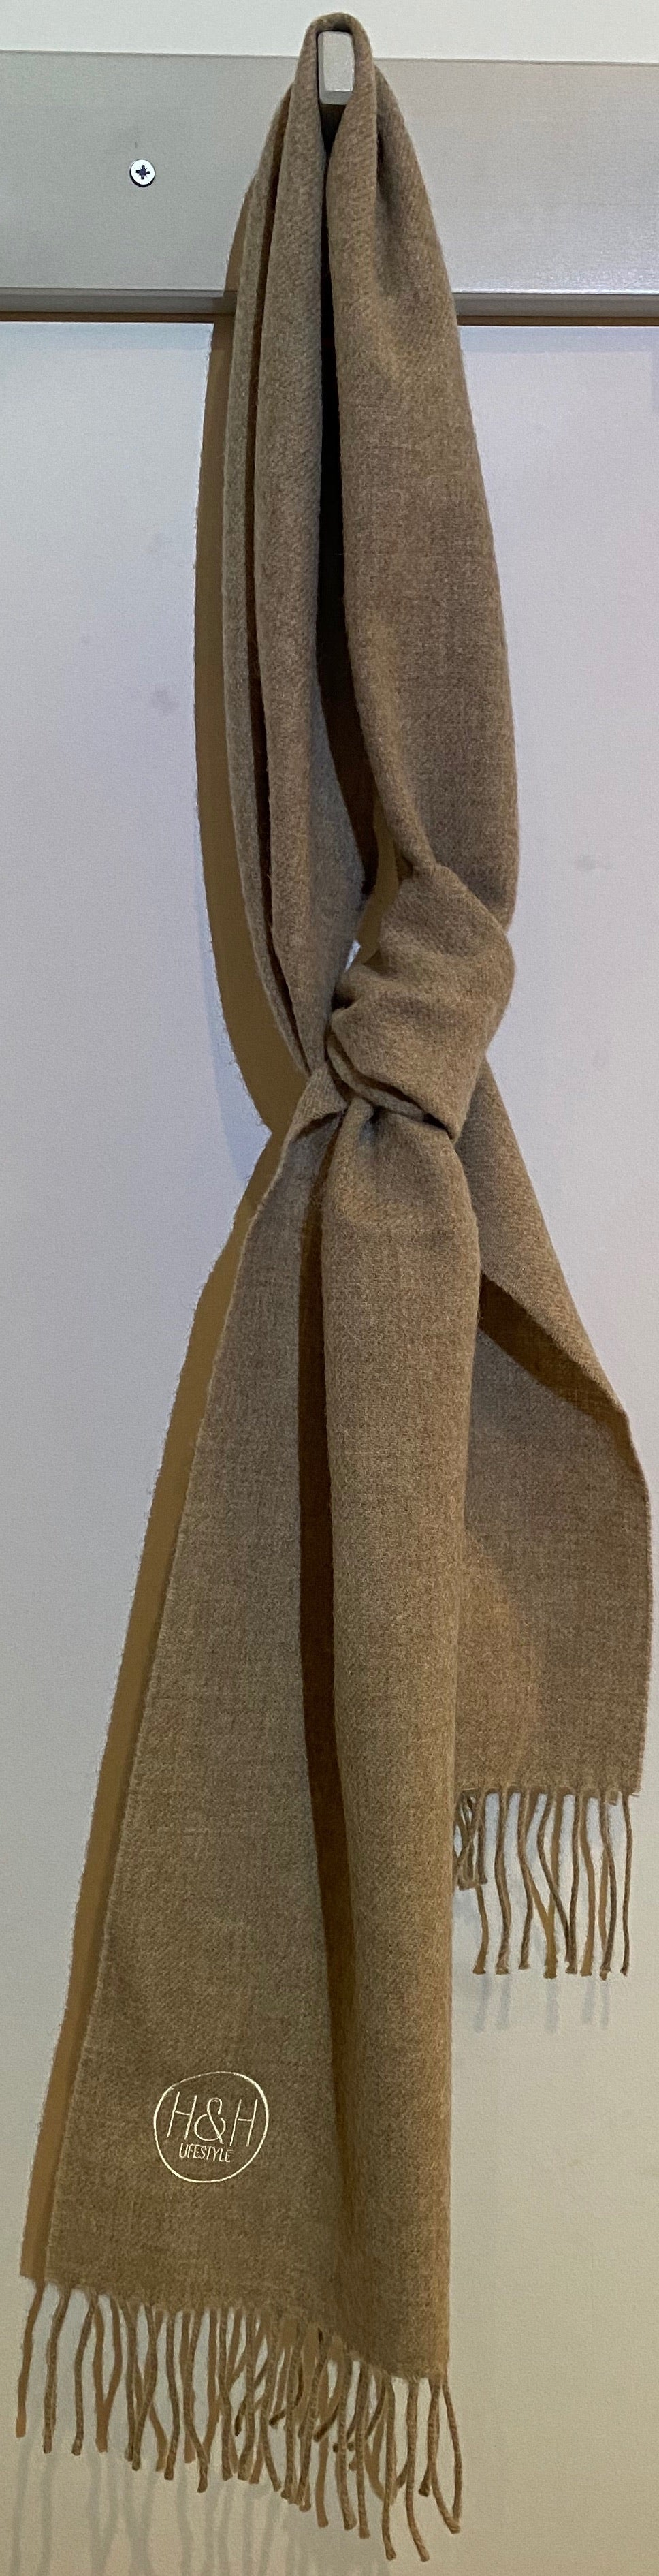 The Tarporley - Lambswool Scarf